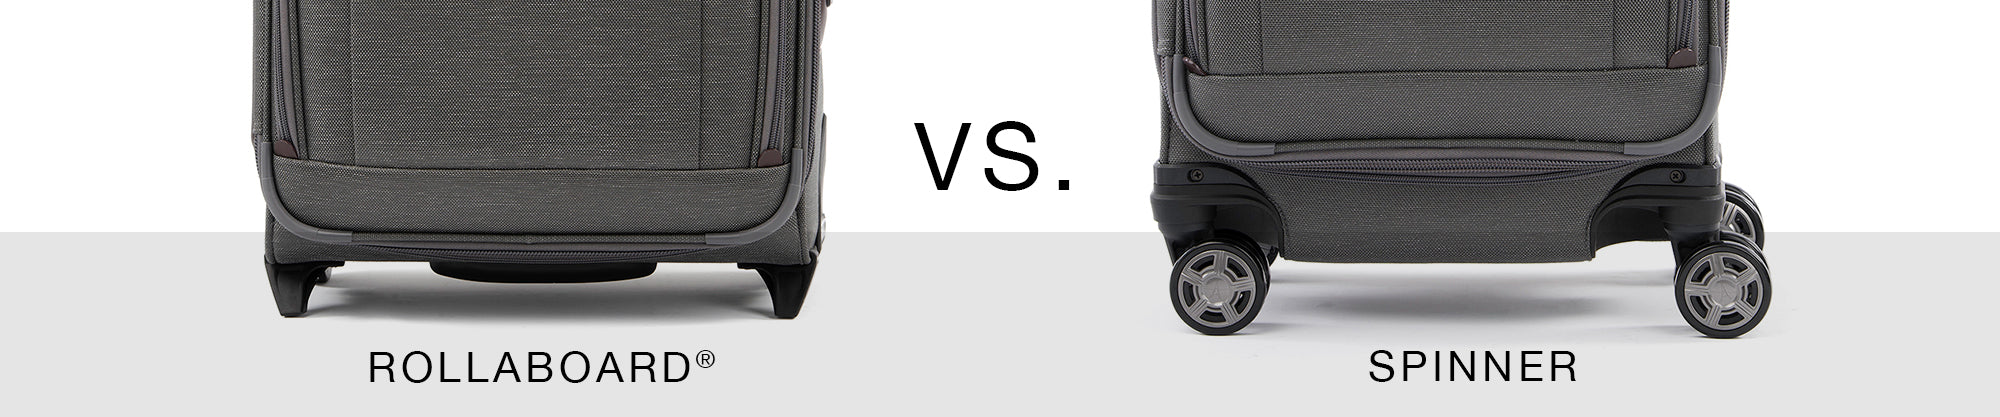 Rollaboard vs. Spinner Luggage comparison highlighting rollaboard suitcase next to spinner suitcase